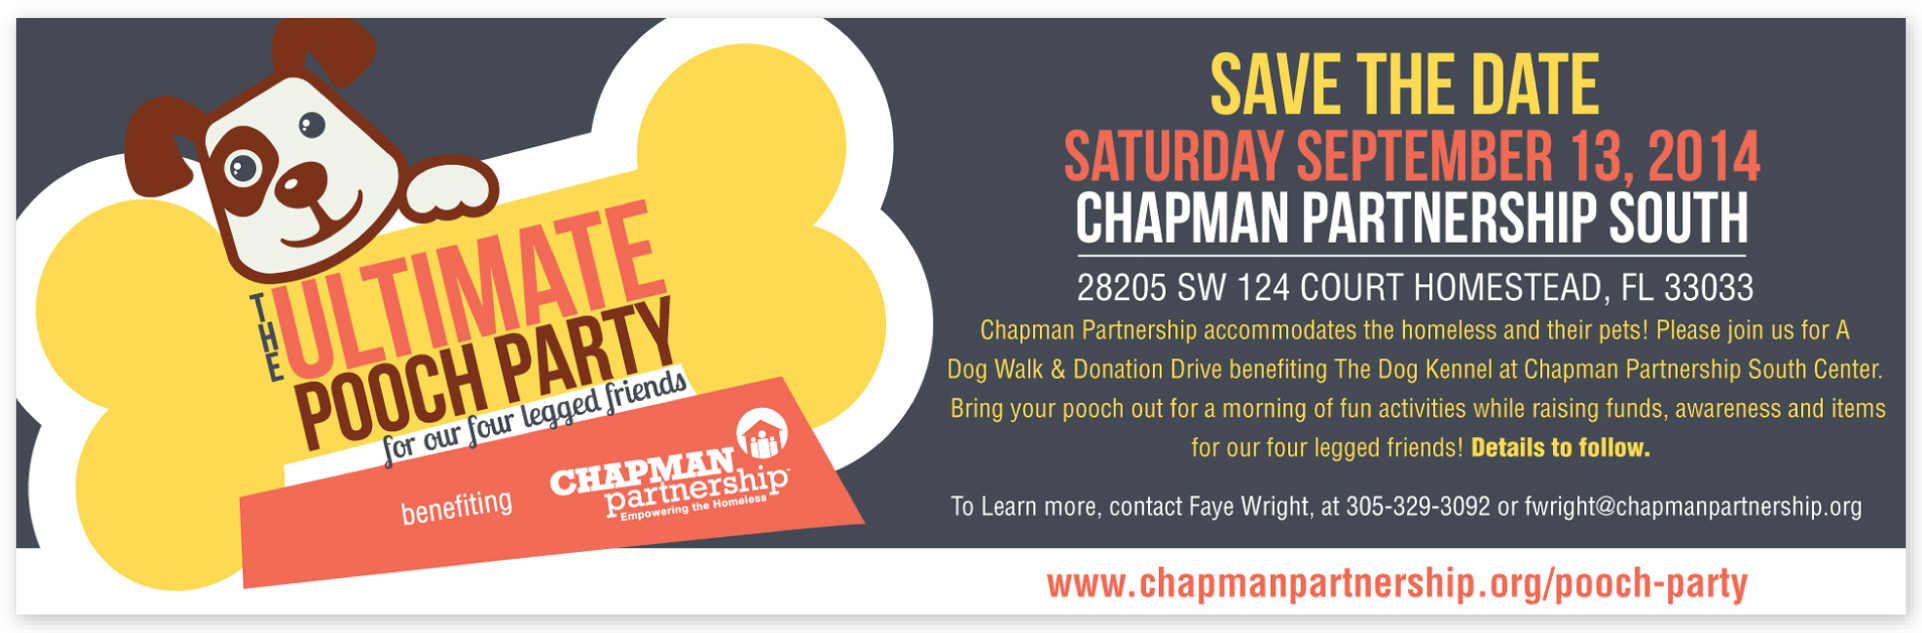 CHAPMAN NEWSLETTER summer july 21